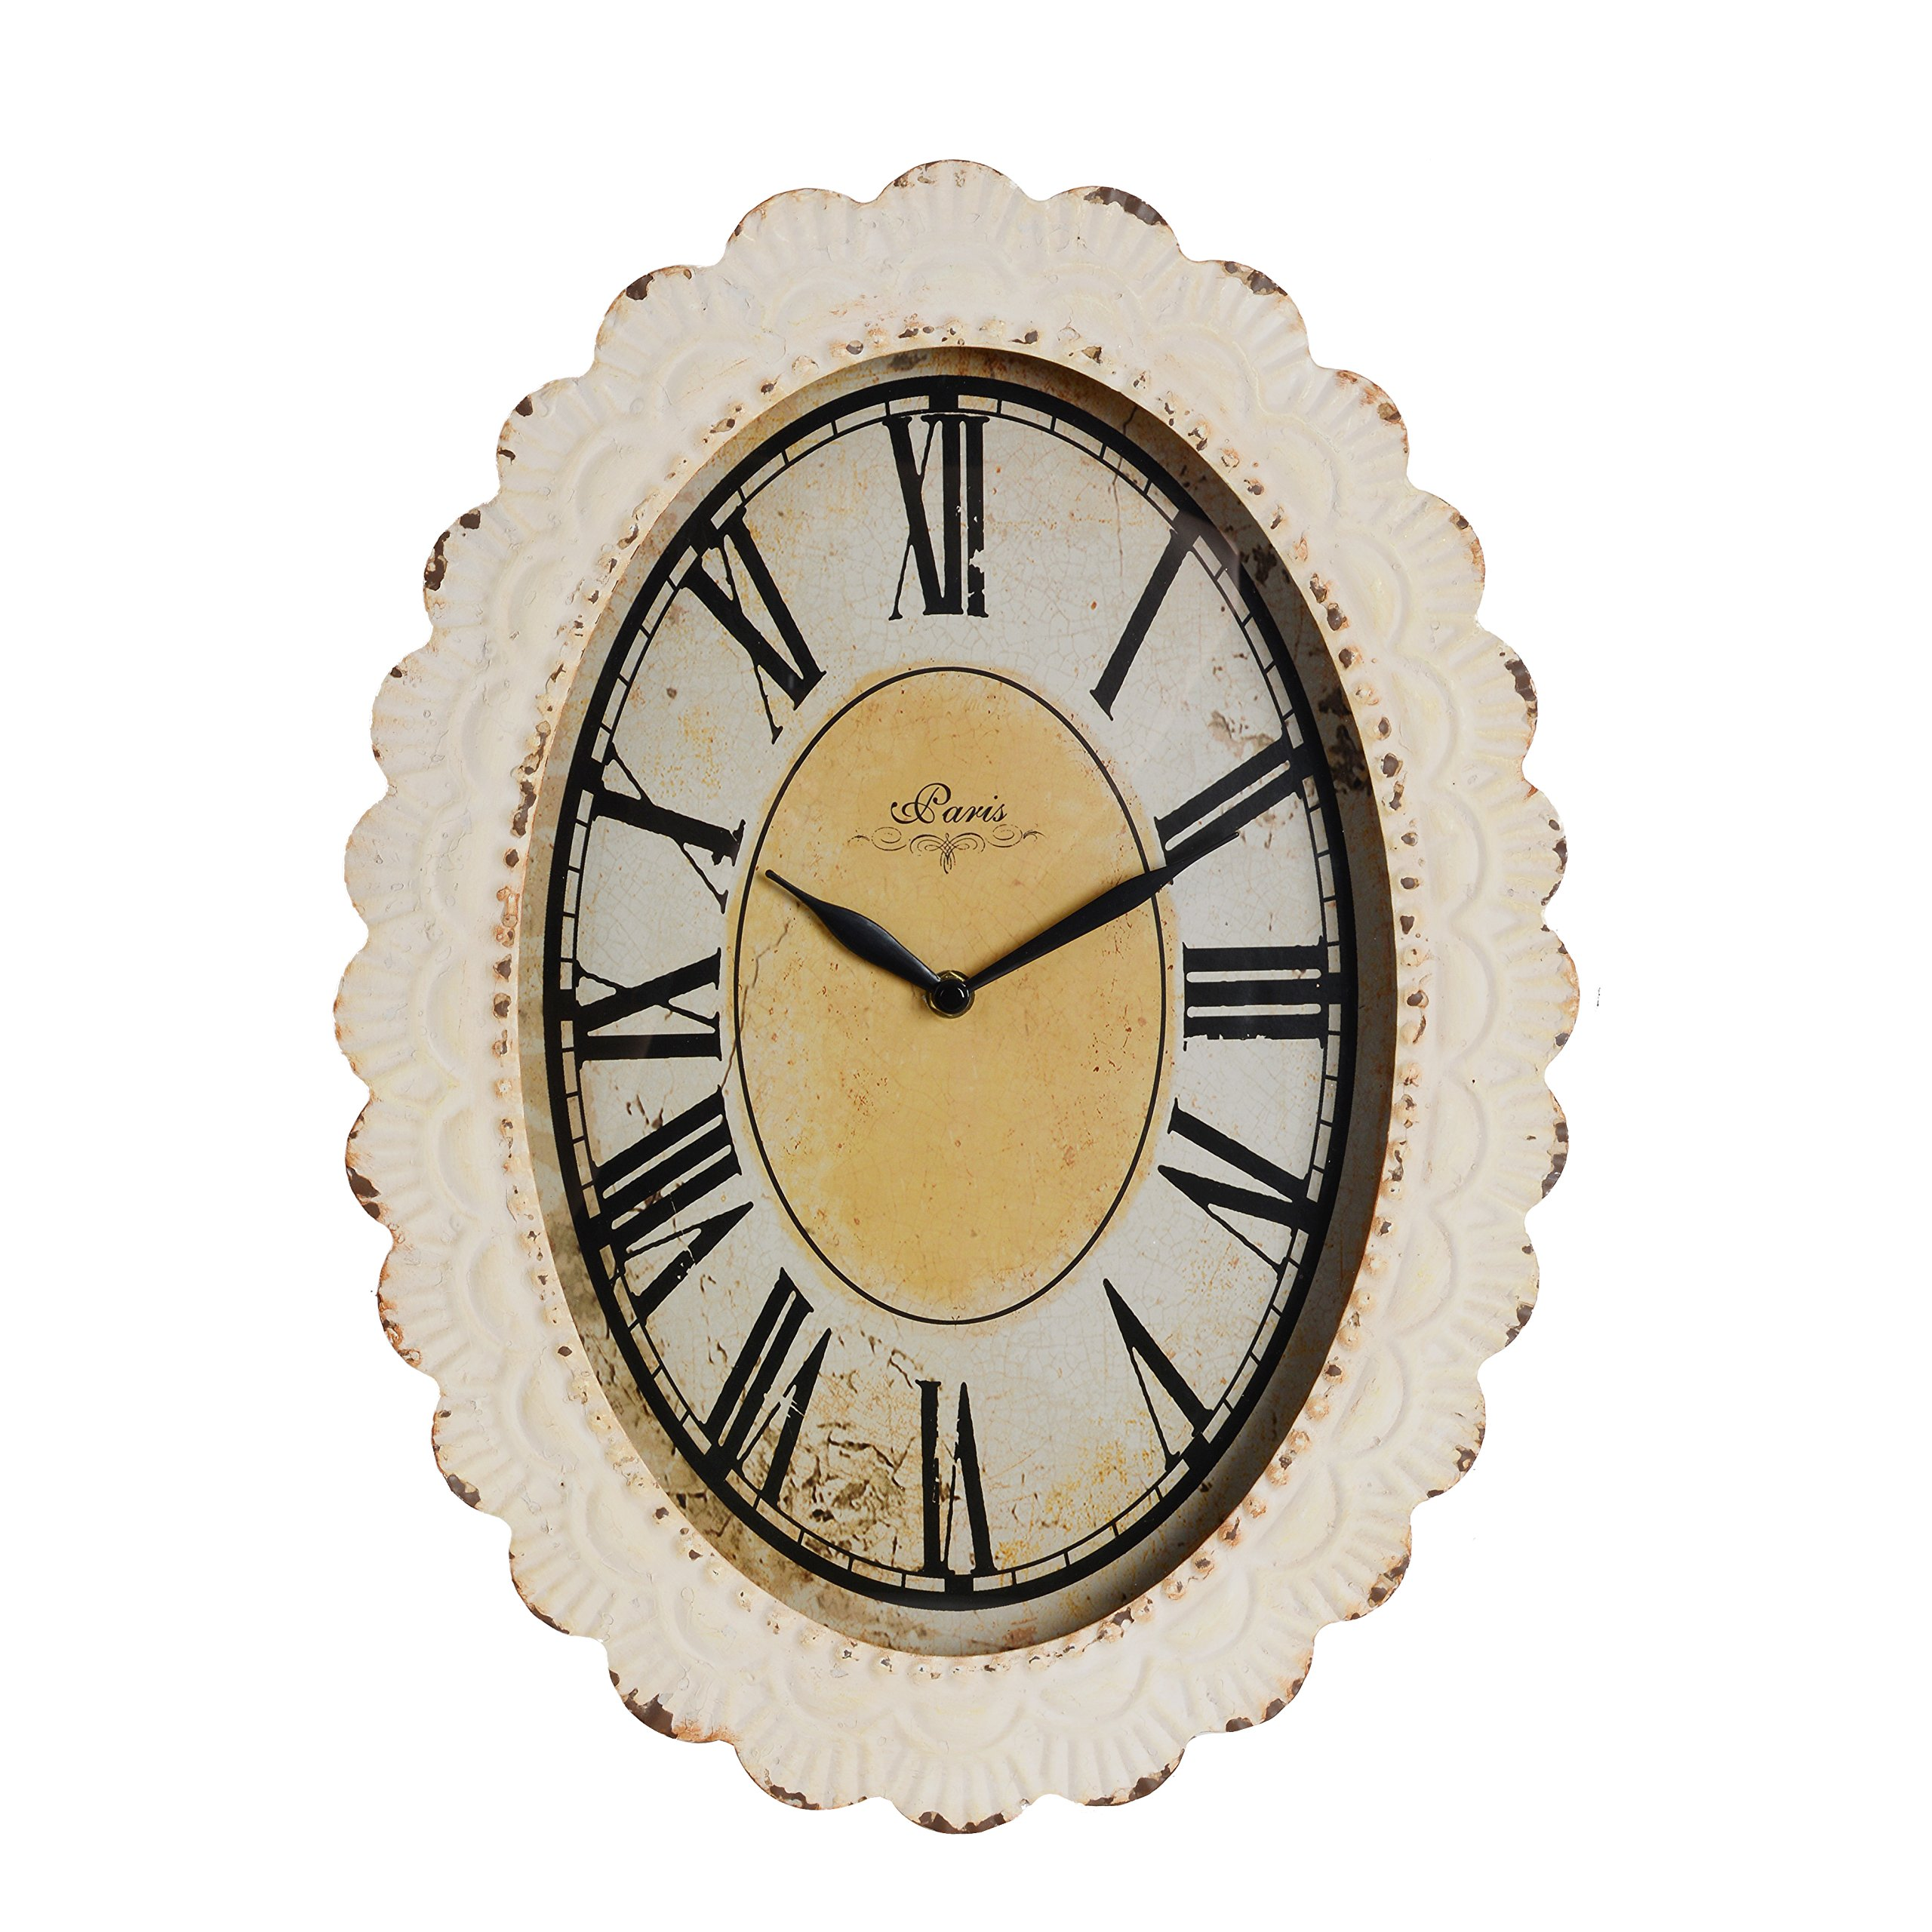 Nikky Home Oval Paris Decor Wall Clock 18 By 13 Inches Off White Antique Reproduction Buy Online In Aruba At Aruba Desertcart Com Productid 36520899